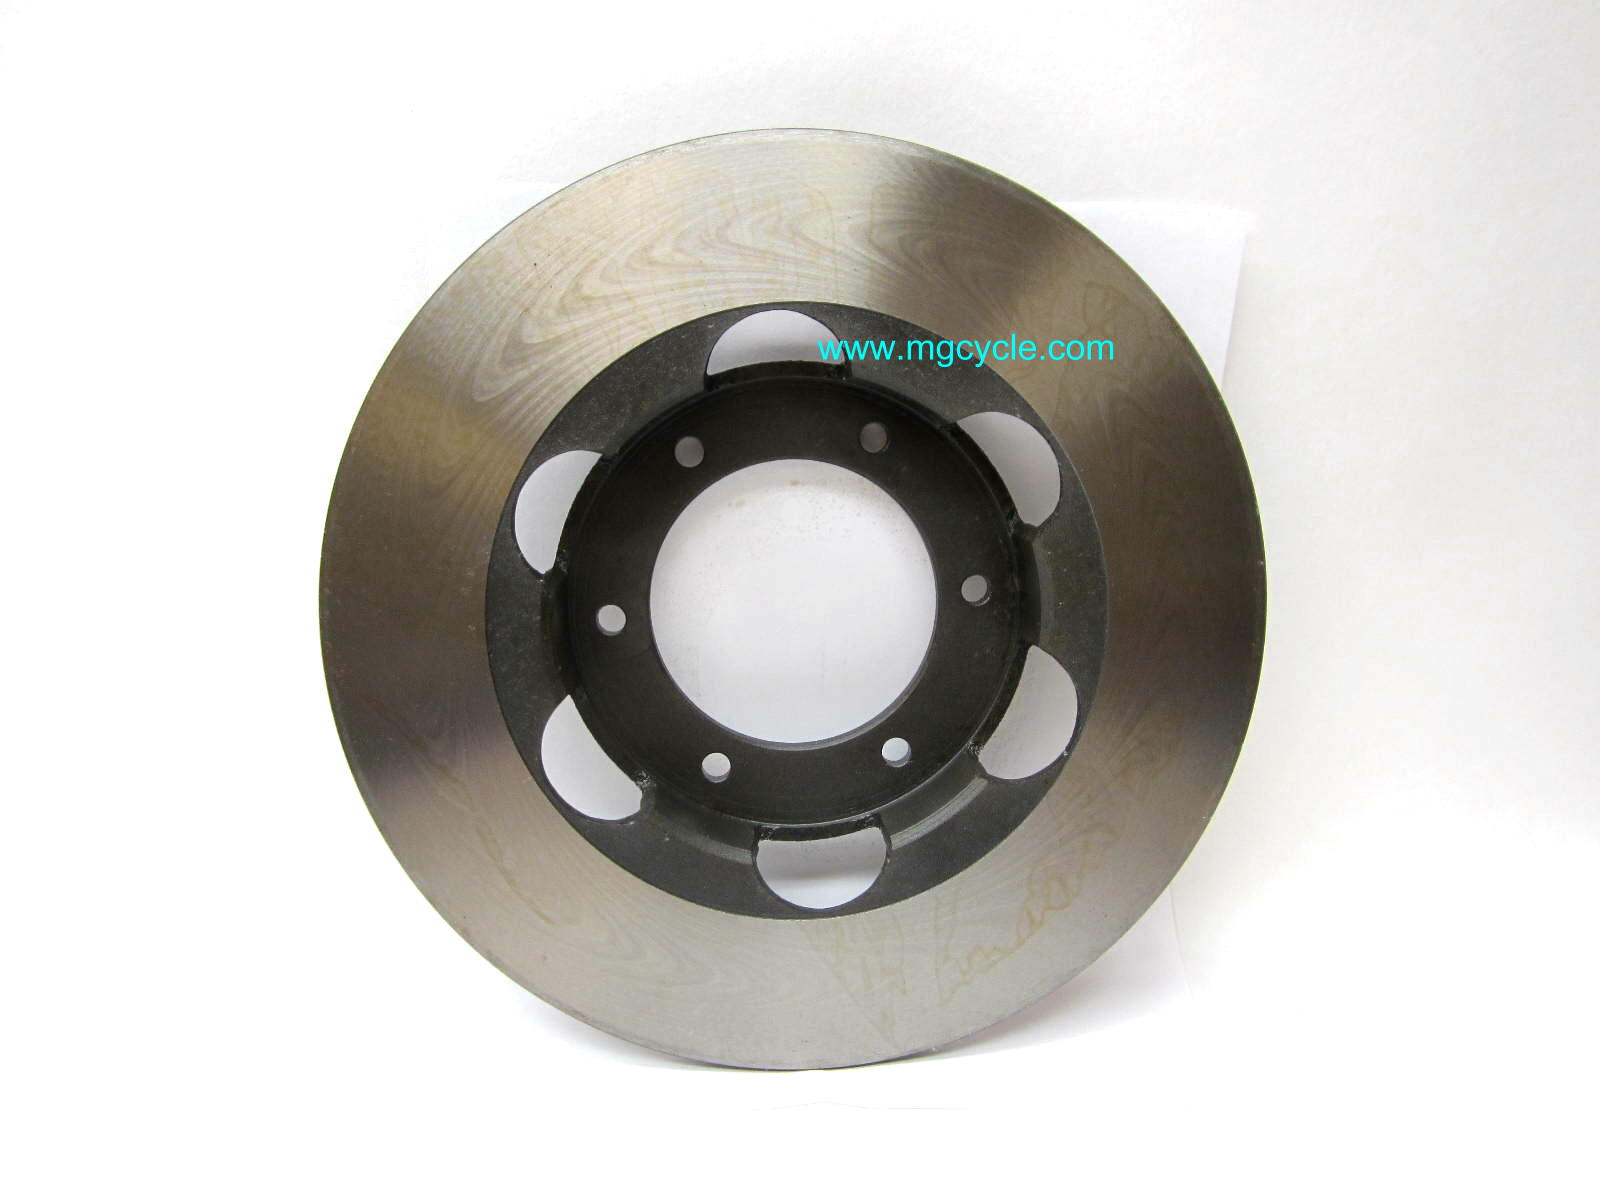 242mm rear brake disk: T3 Convert G5 SP1000 California II